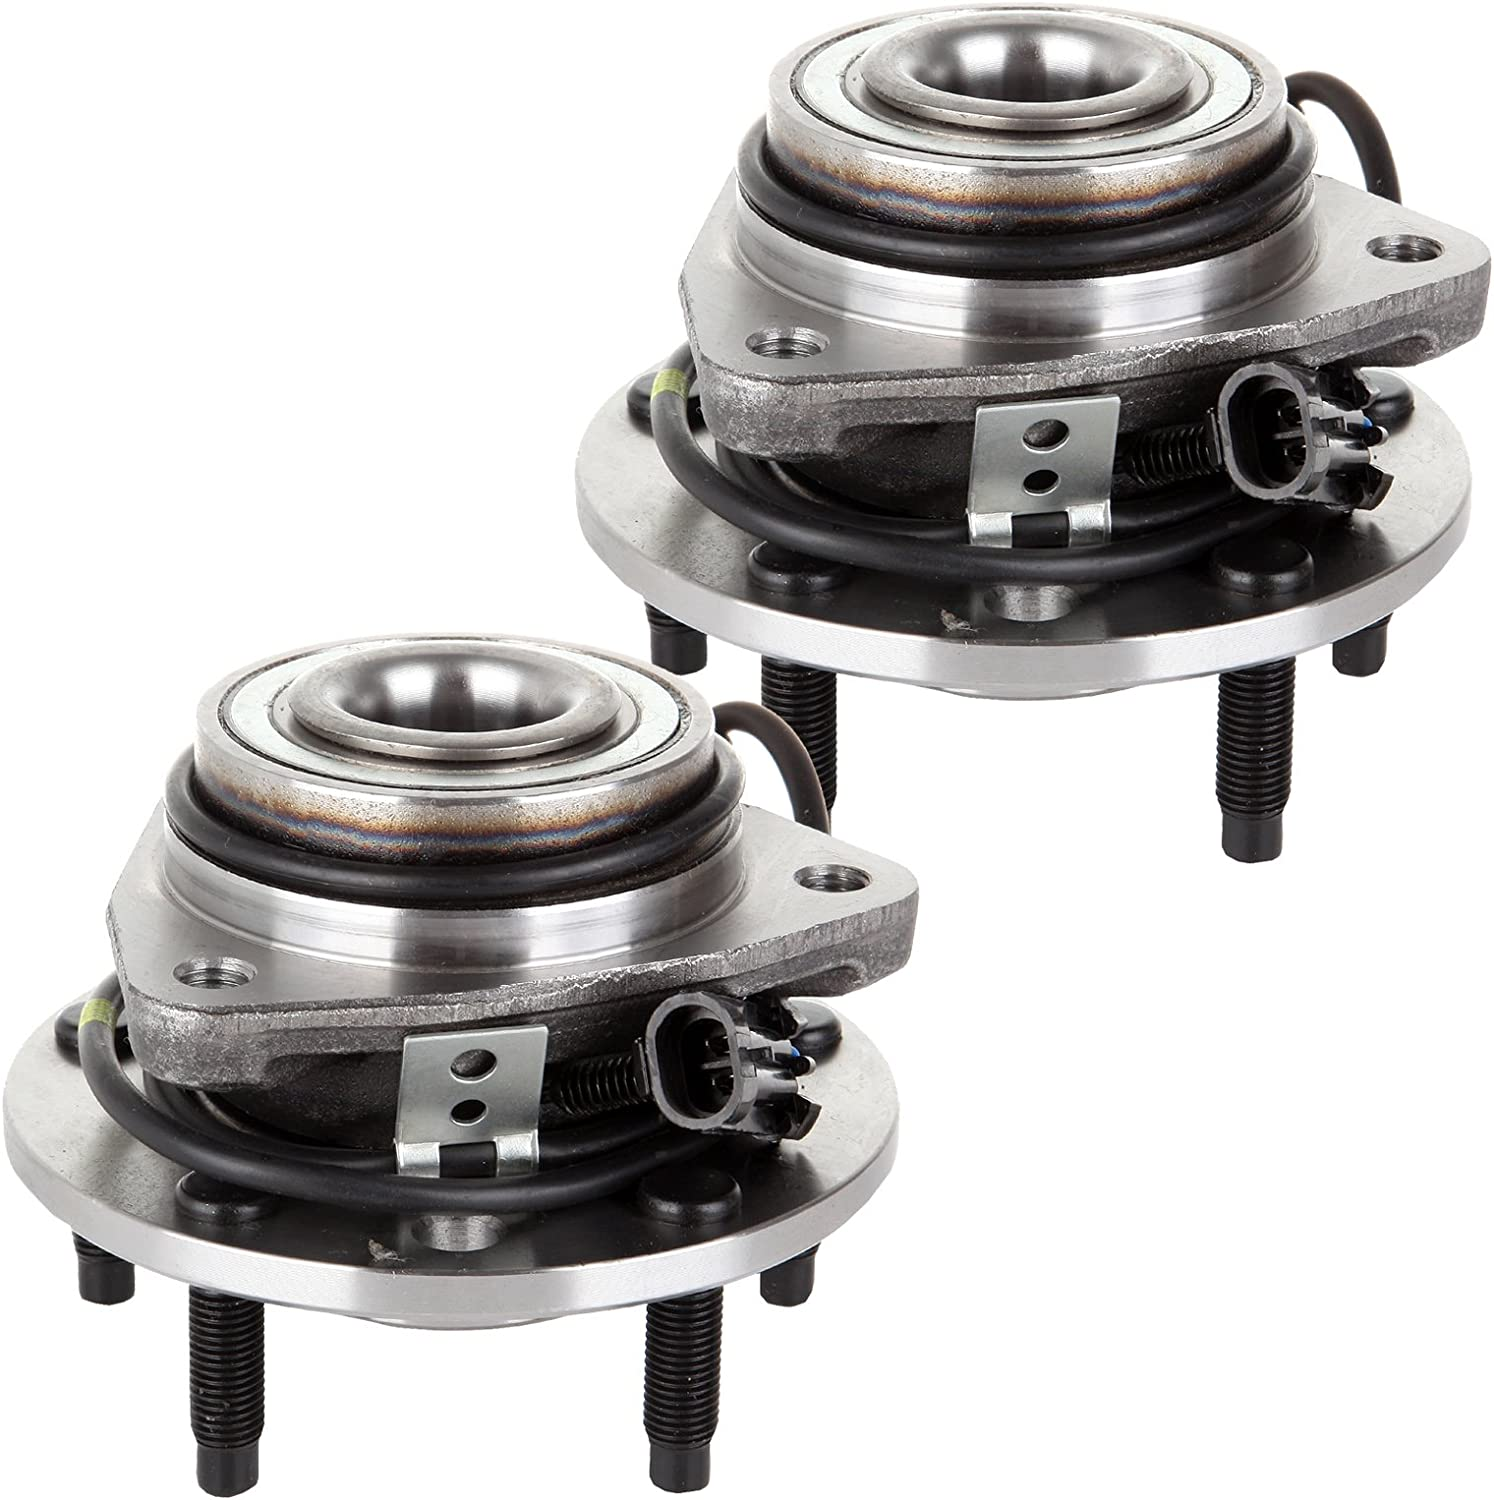 ECCPP Replacement for Front Wheel Hub Bearing Assembly 5-Lugs W/ABS for 97-05 Chevy Blazer 97-04 S10 97-05 GMC Jimmy 97-04 Sonoma 4WD 513124 2pcs